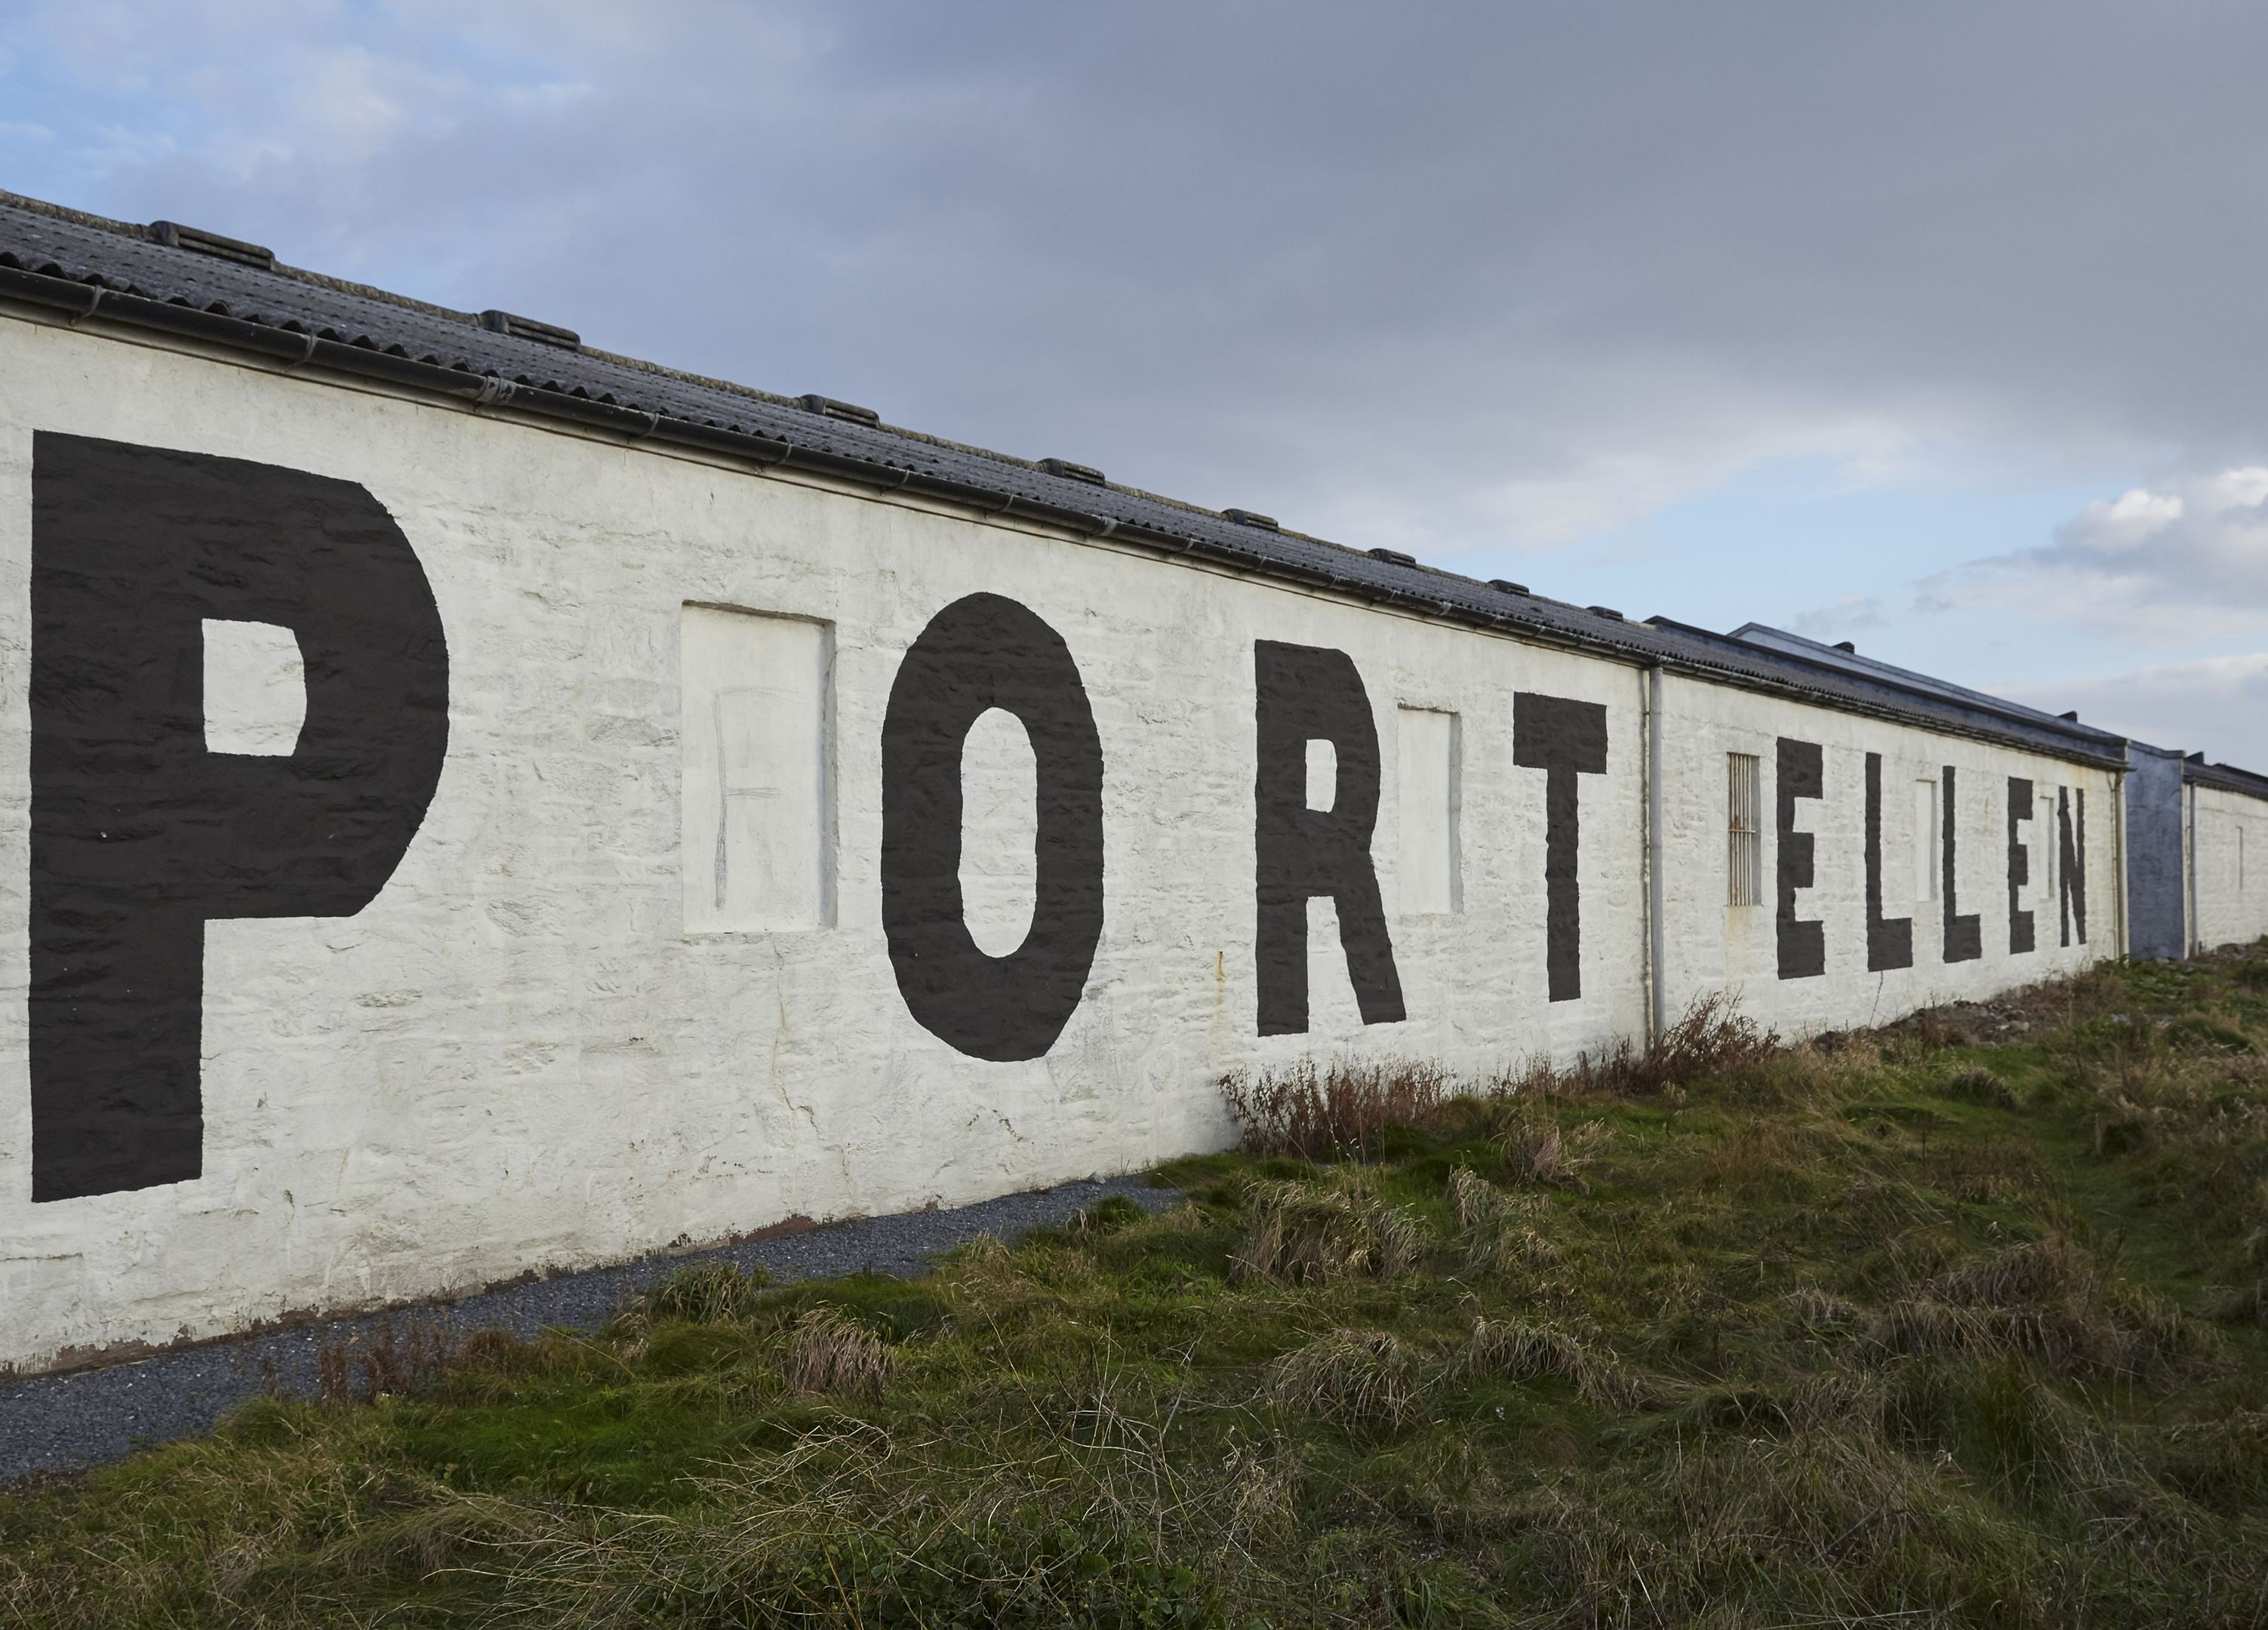 The Port Ellen distillery on the island of Islay which is being brought back into production by drinks giant Diageo.